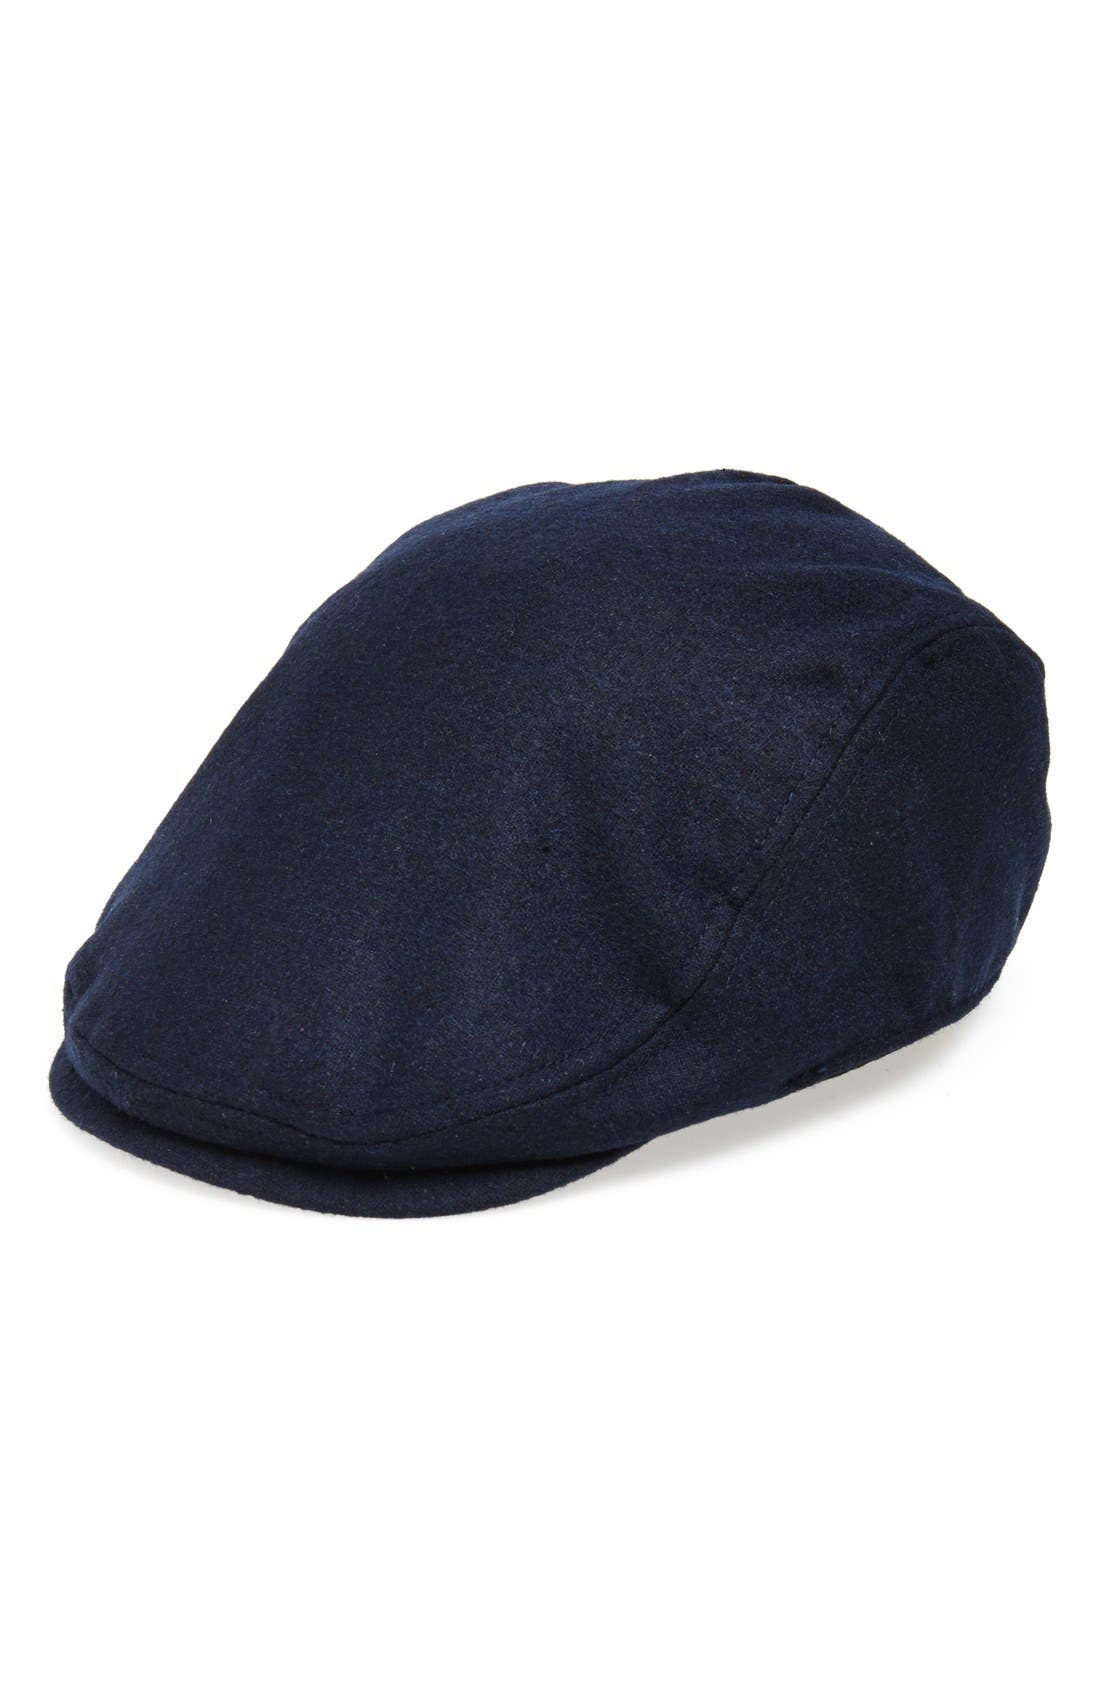 Glory Hats by Goorin 'Mikey' Driving Cap,                             Main thumbnail 1, color,                             Navy